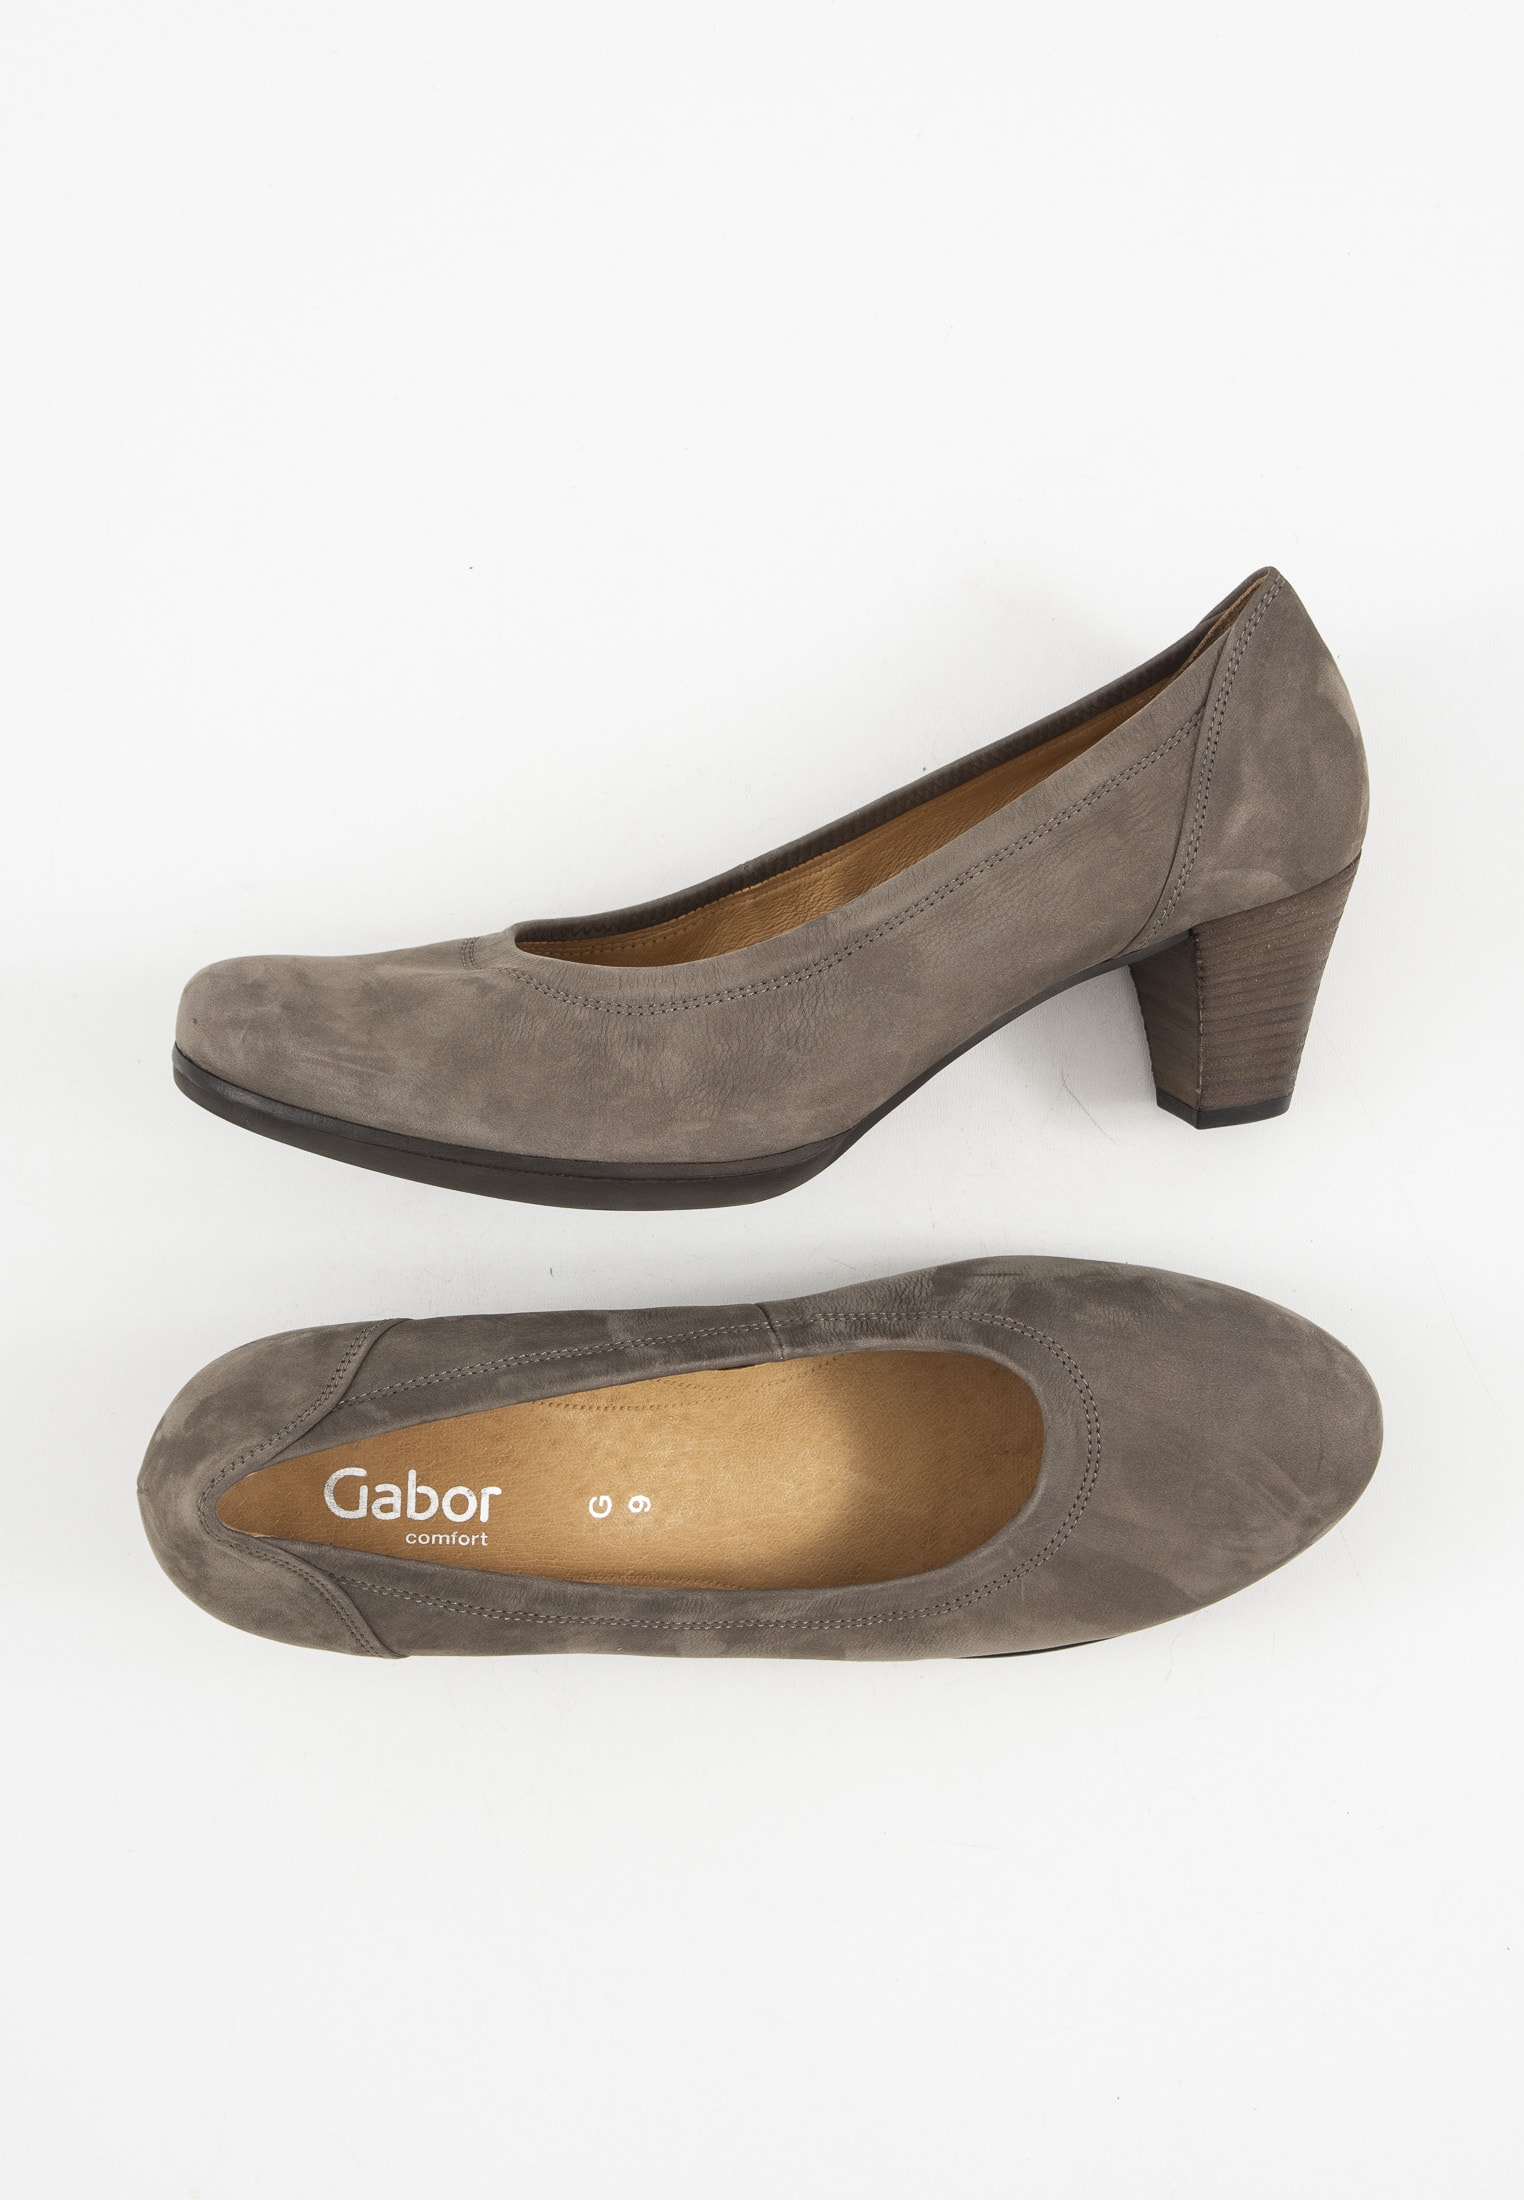 Gabor pumps, brun, 39.5